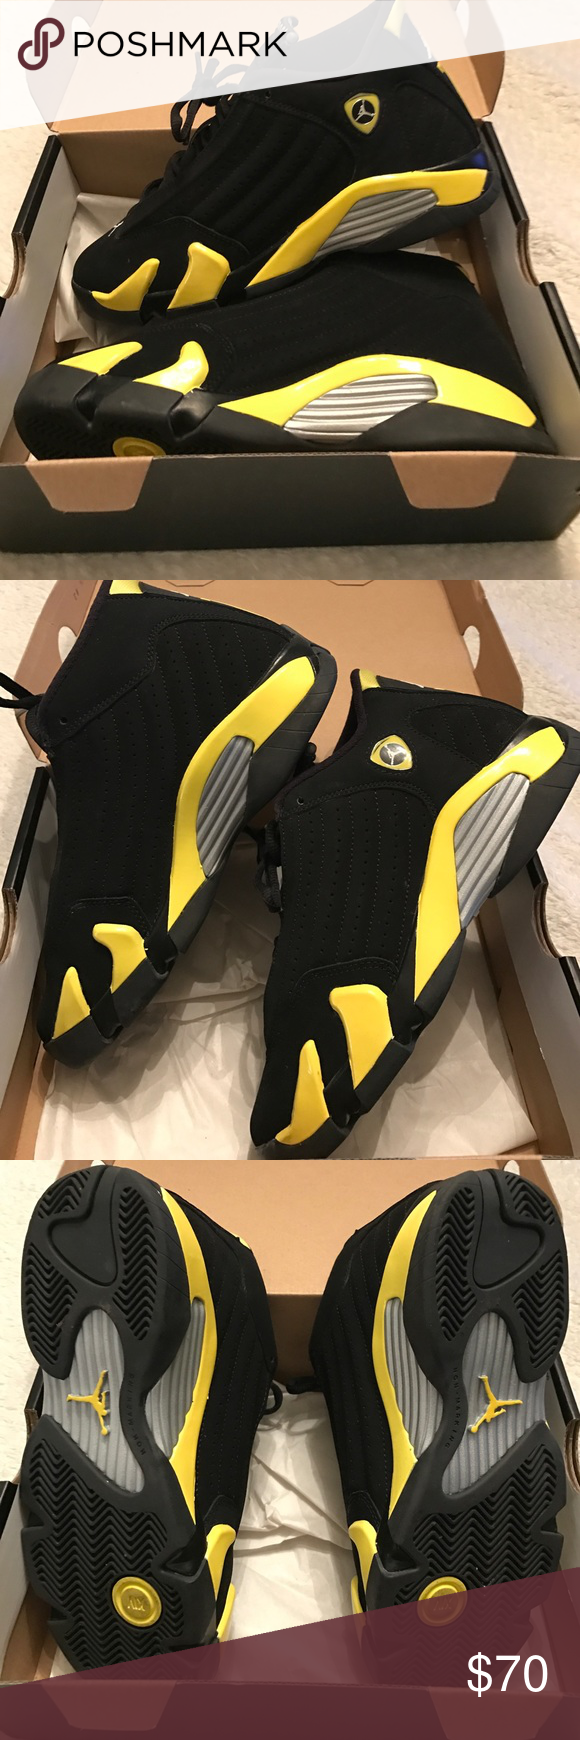 bf5a99545108 Air Jordan 14 Retro Air Jordan 14 Retro BG size....Only worn once great  condition pretty much like new....these run small